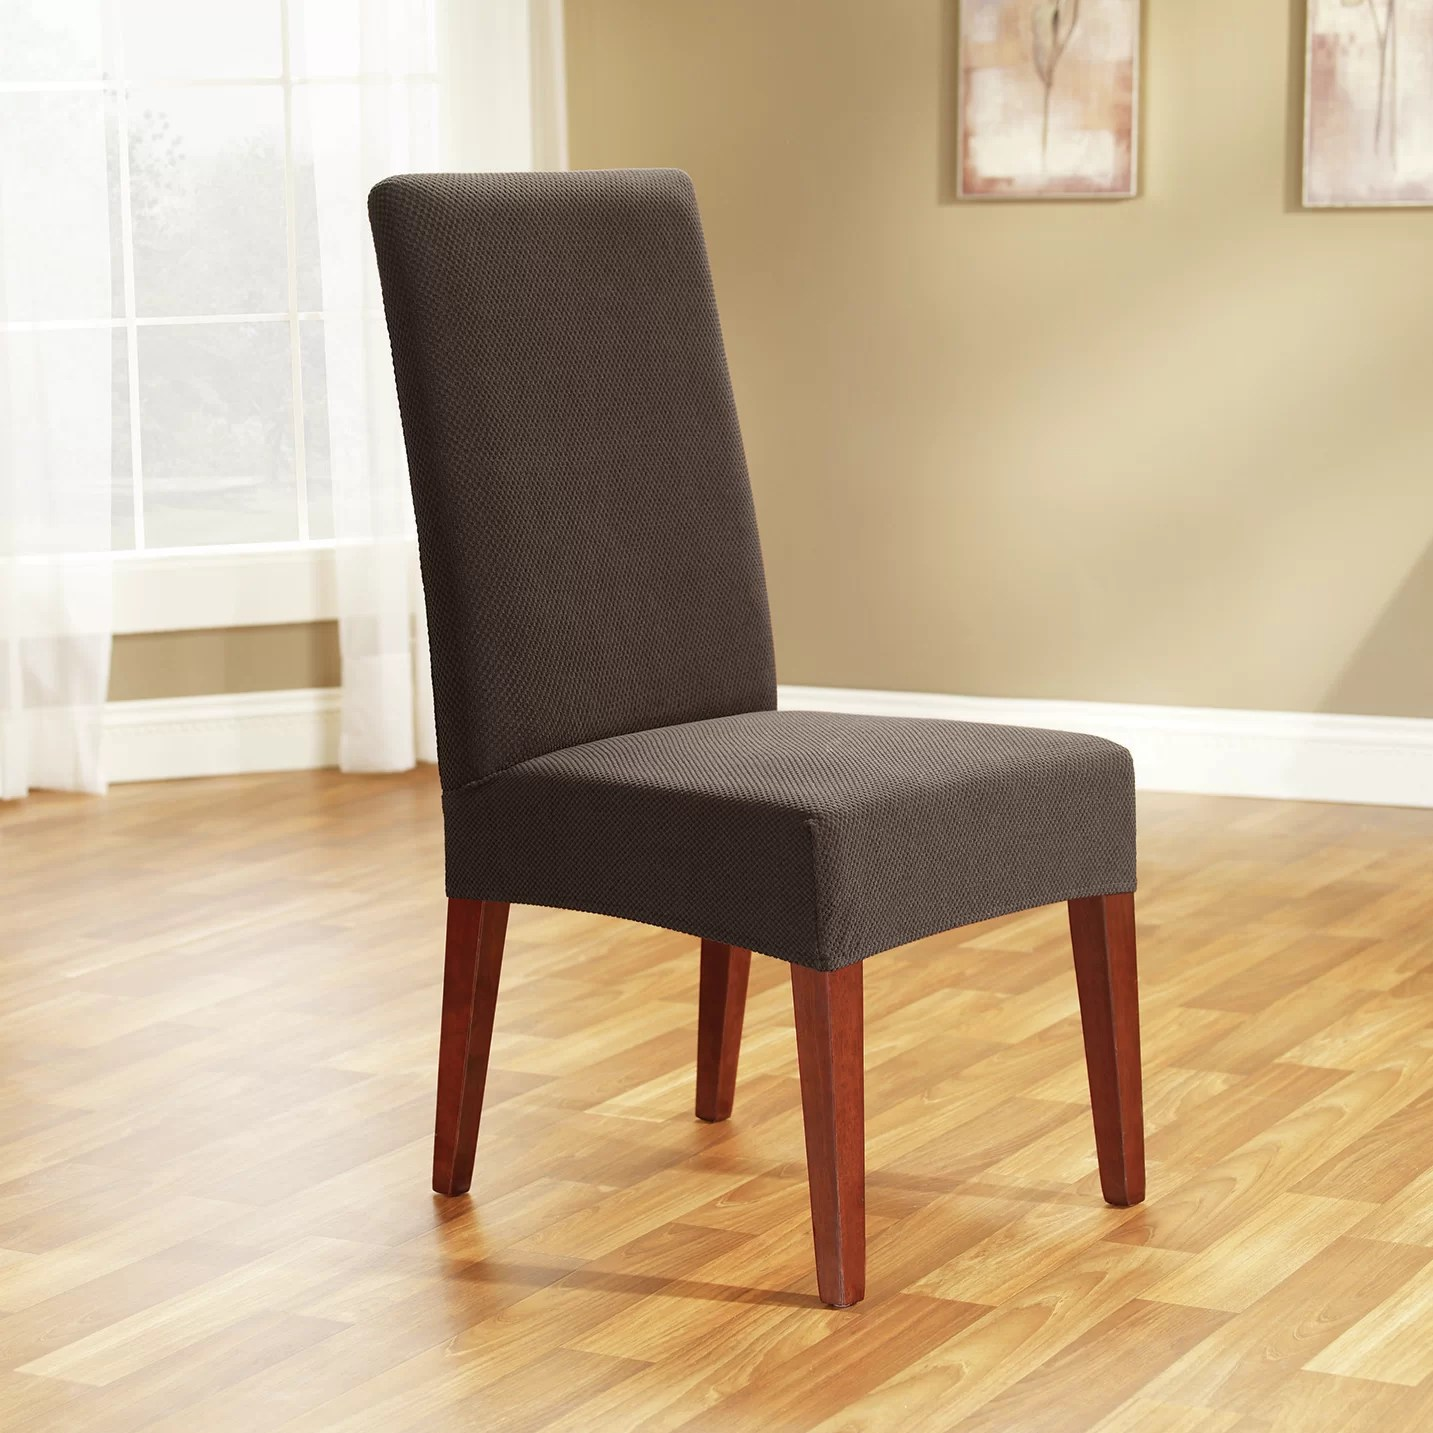 slipcovers for parsons chairs ergonomic chair in bangladesh sure fit honeycomb parson slipcover and reviews wayfair